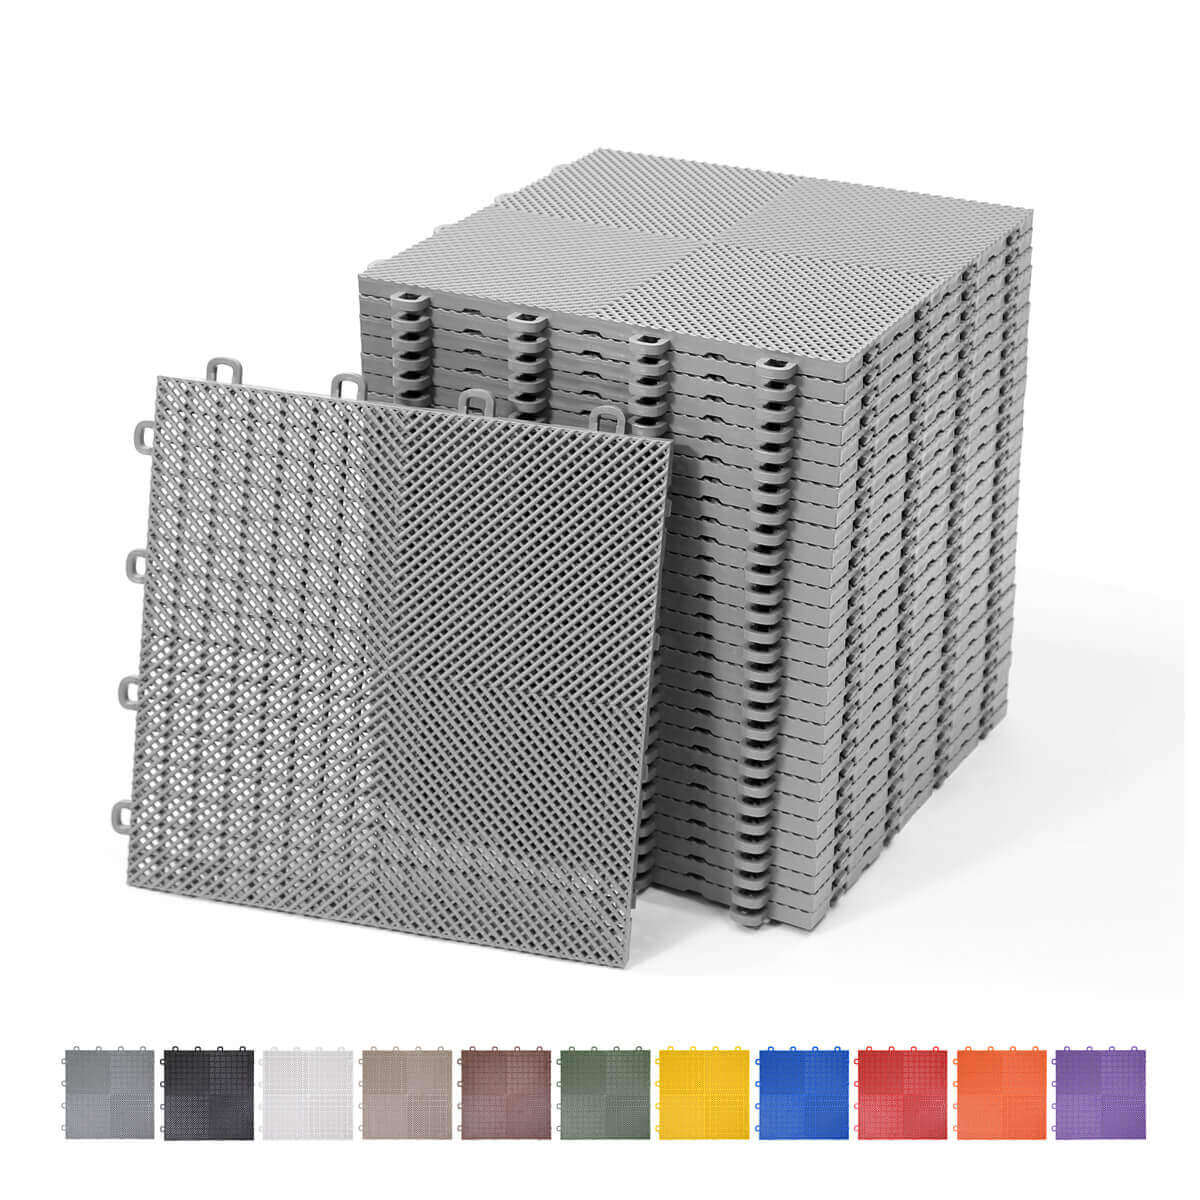 Perforated Interlocking Floor Tiles Blocktile